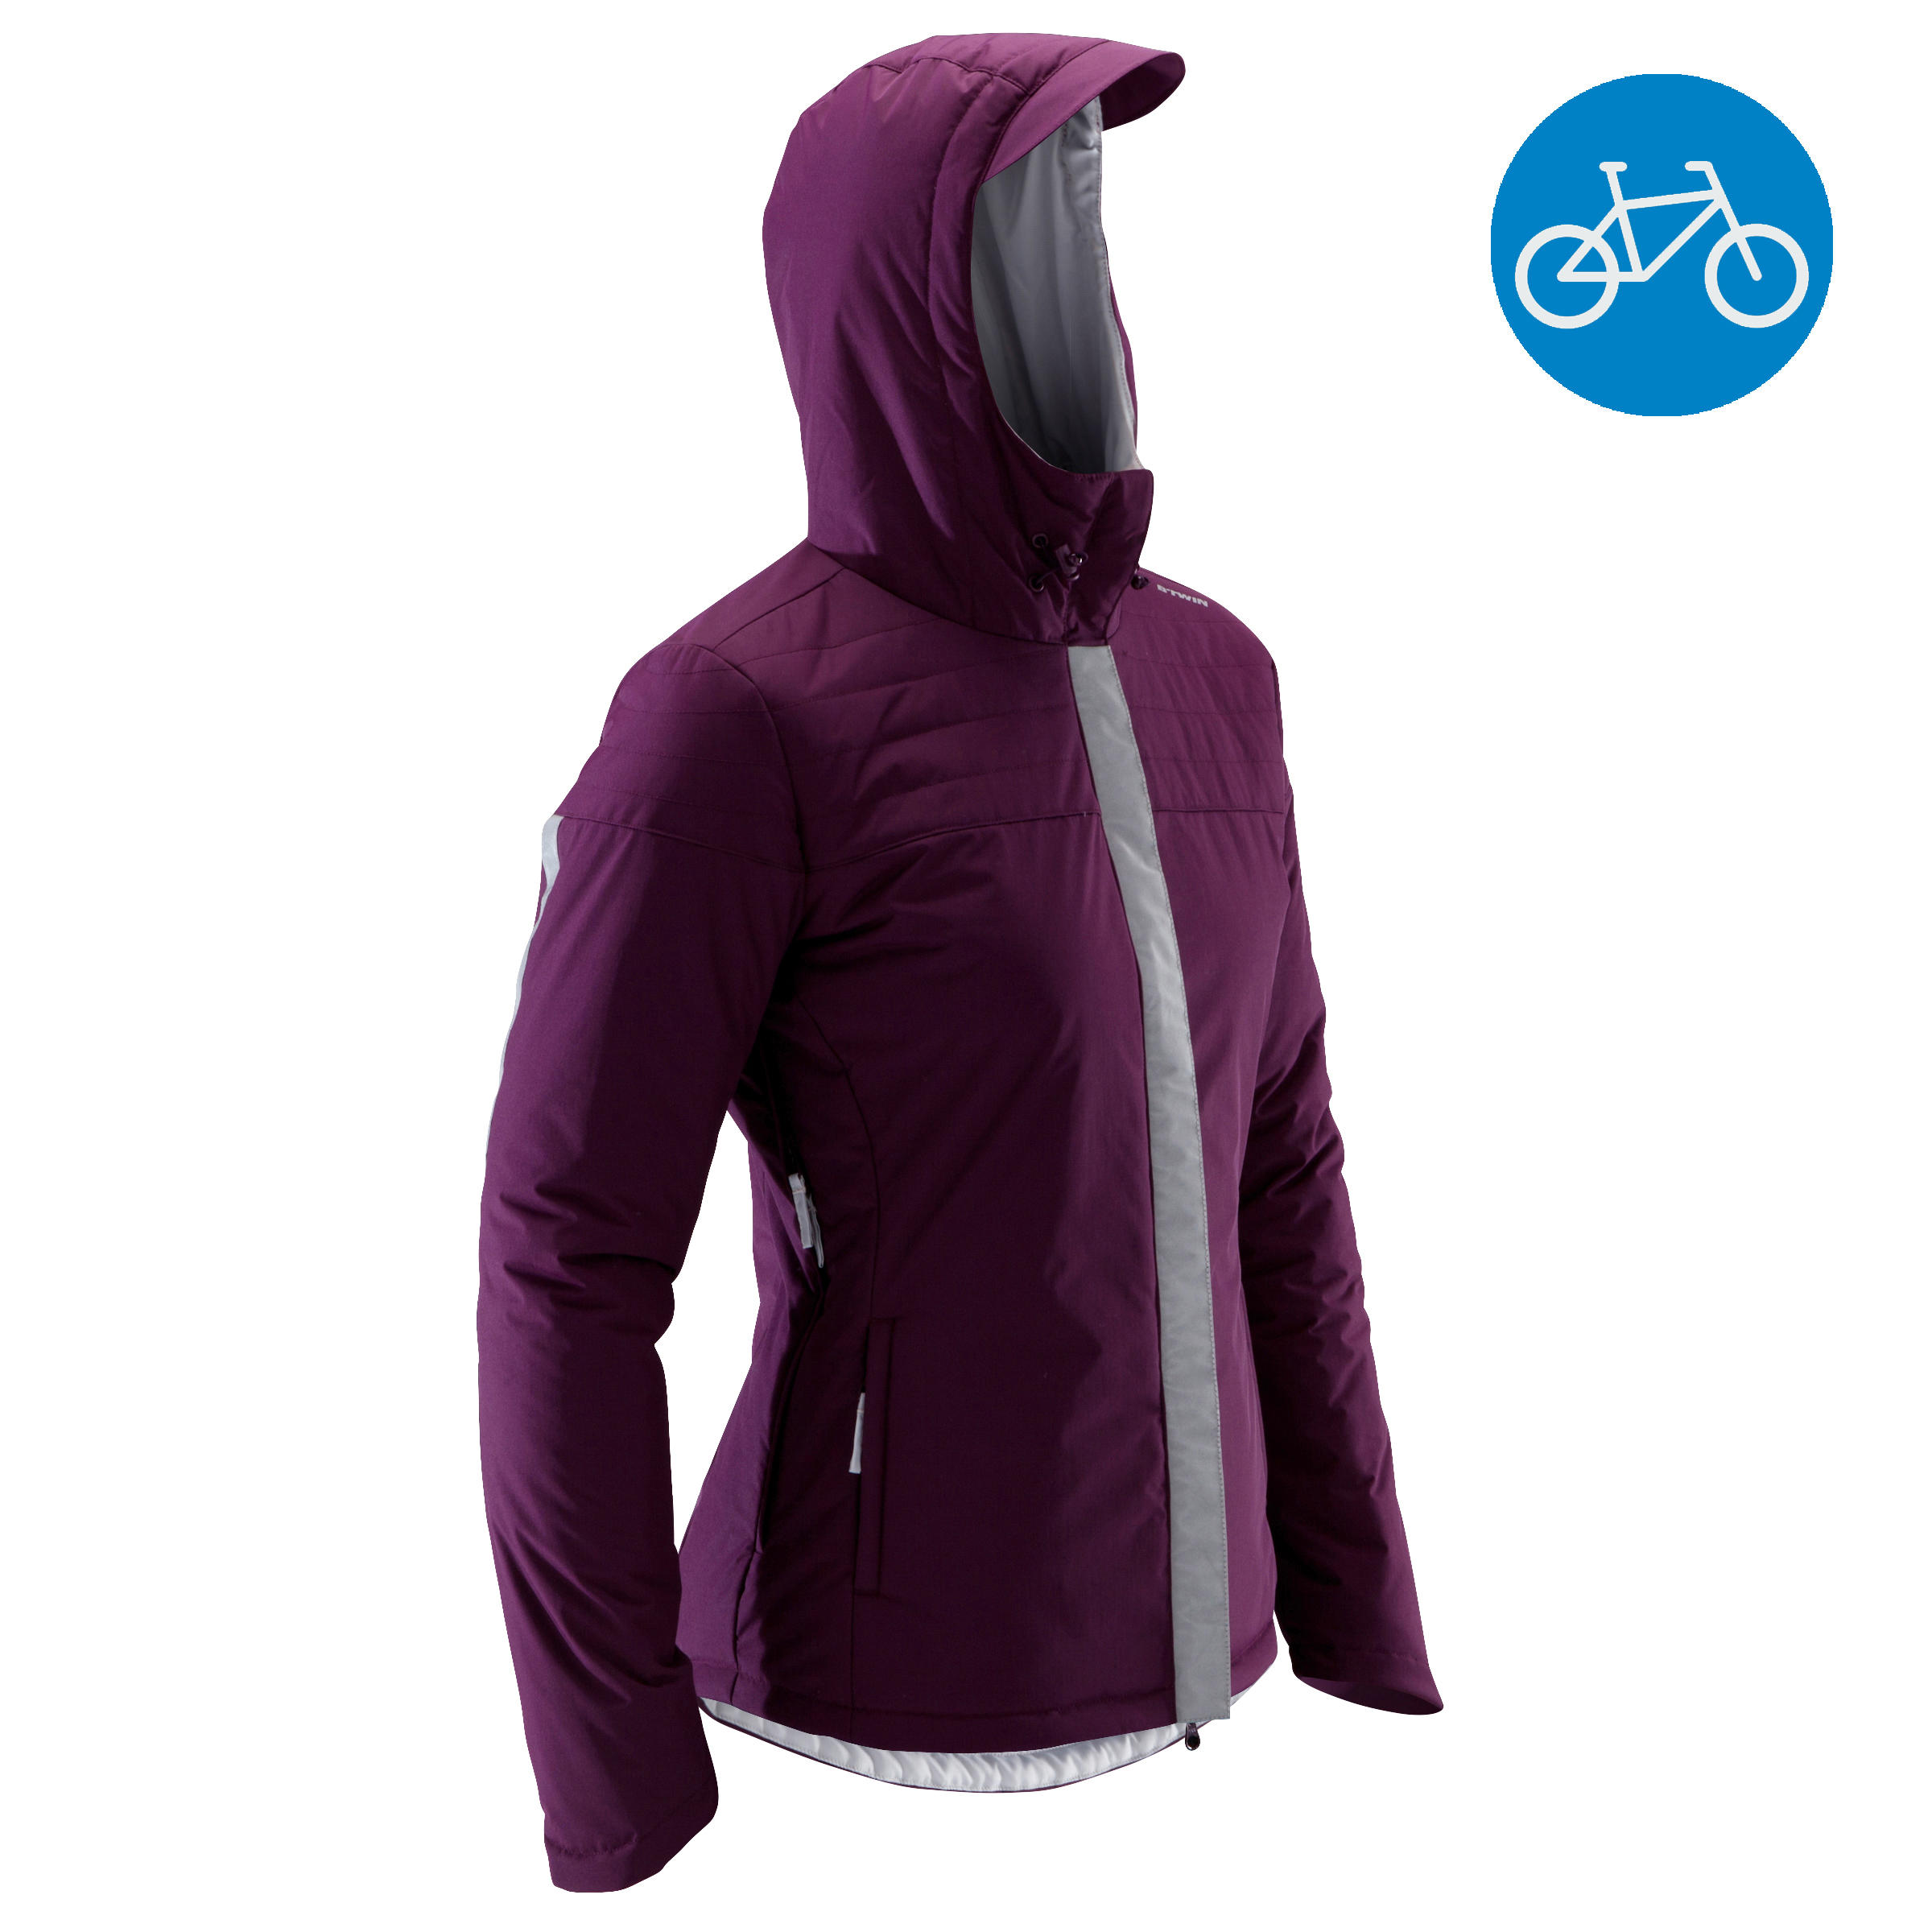 900 Women's Warm Cycling Rain Jacket - Plum